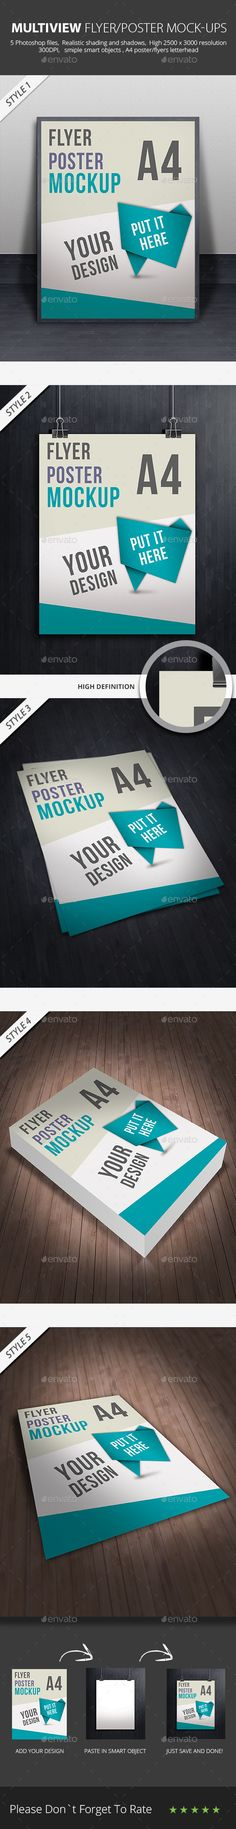 A4 Mockup / Flyer Mockup / Poster Mockup / Hand Mockup. Any kind of sports, event, corporate, company or business flyer will suit with this design.